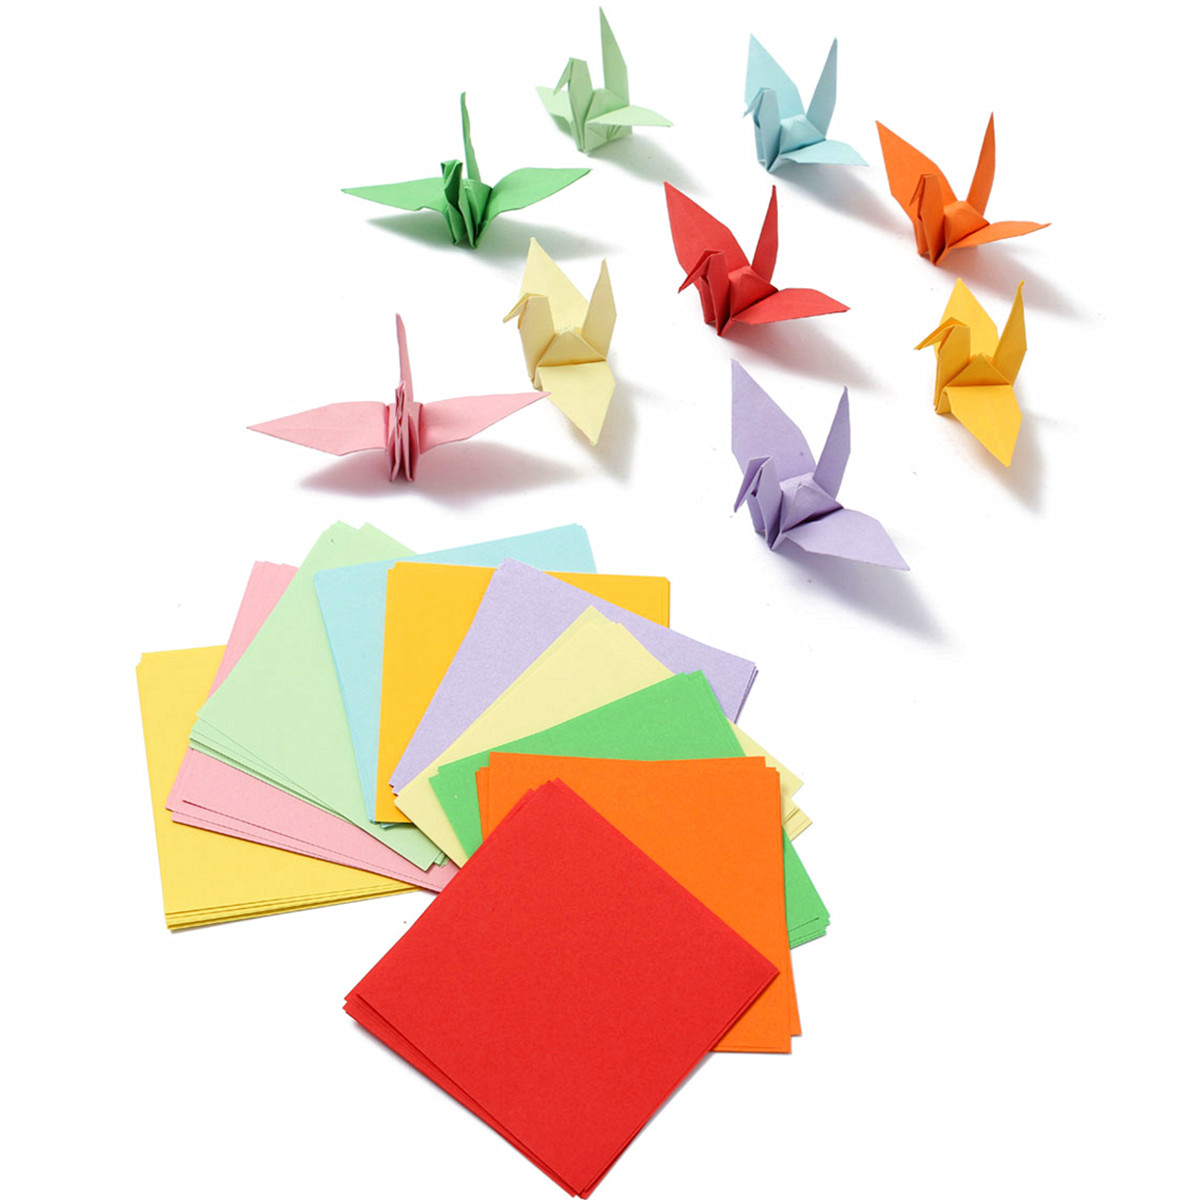 Hot Style 100 PCs Lot Multicolor Origami Square Paper Toy Hand Making Sheets For Papercranes Crafts Children Kids DIY Best Gift In Learning Education From